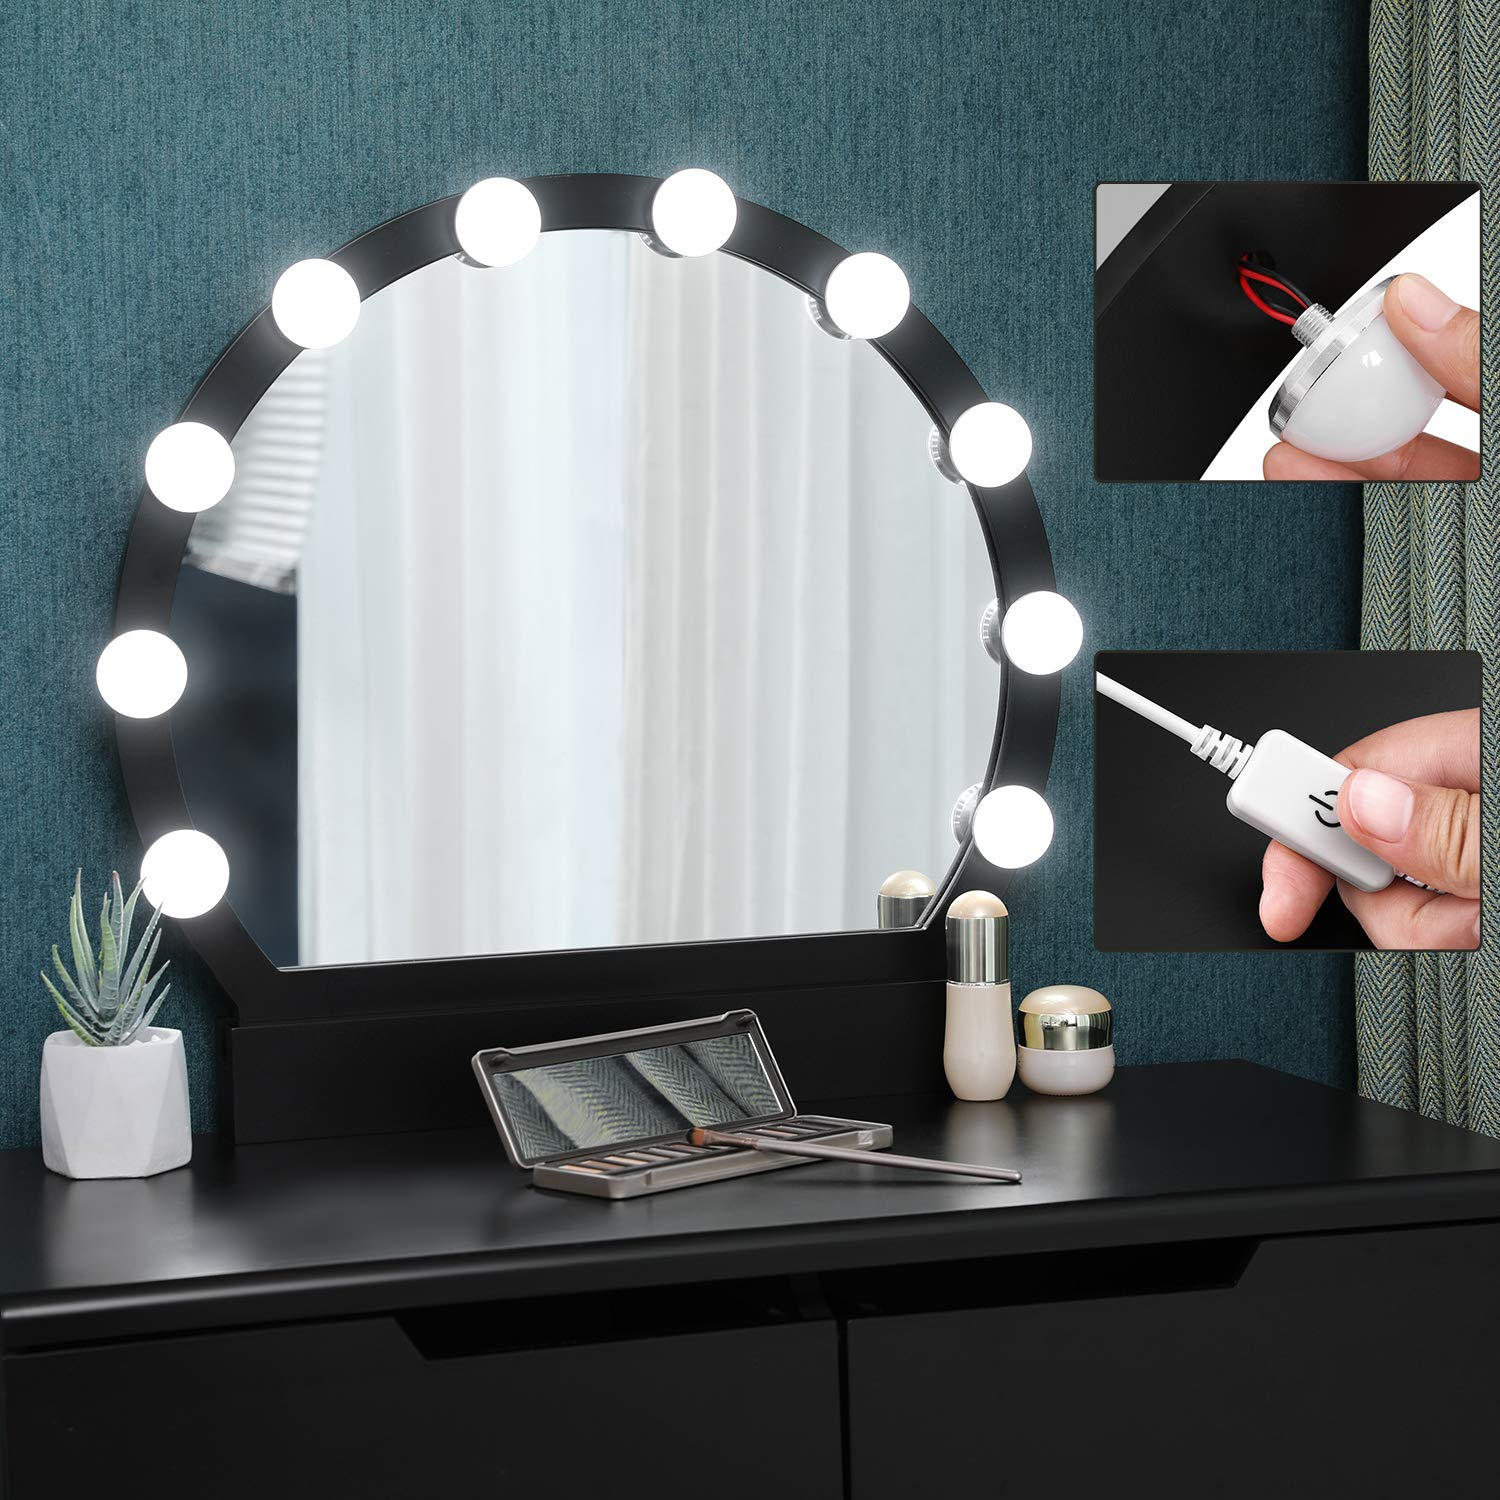 SONGMICS Dressing Table Set with Mirror and Light Bulbs for Makeup Vanity Table with 2 Large Sliding Drawers and Cushioned Stool White RDT11WL